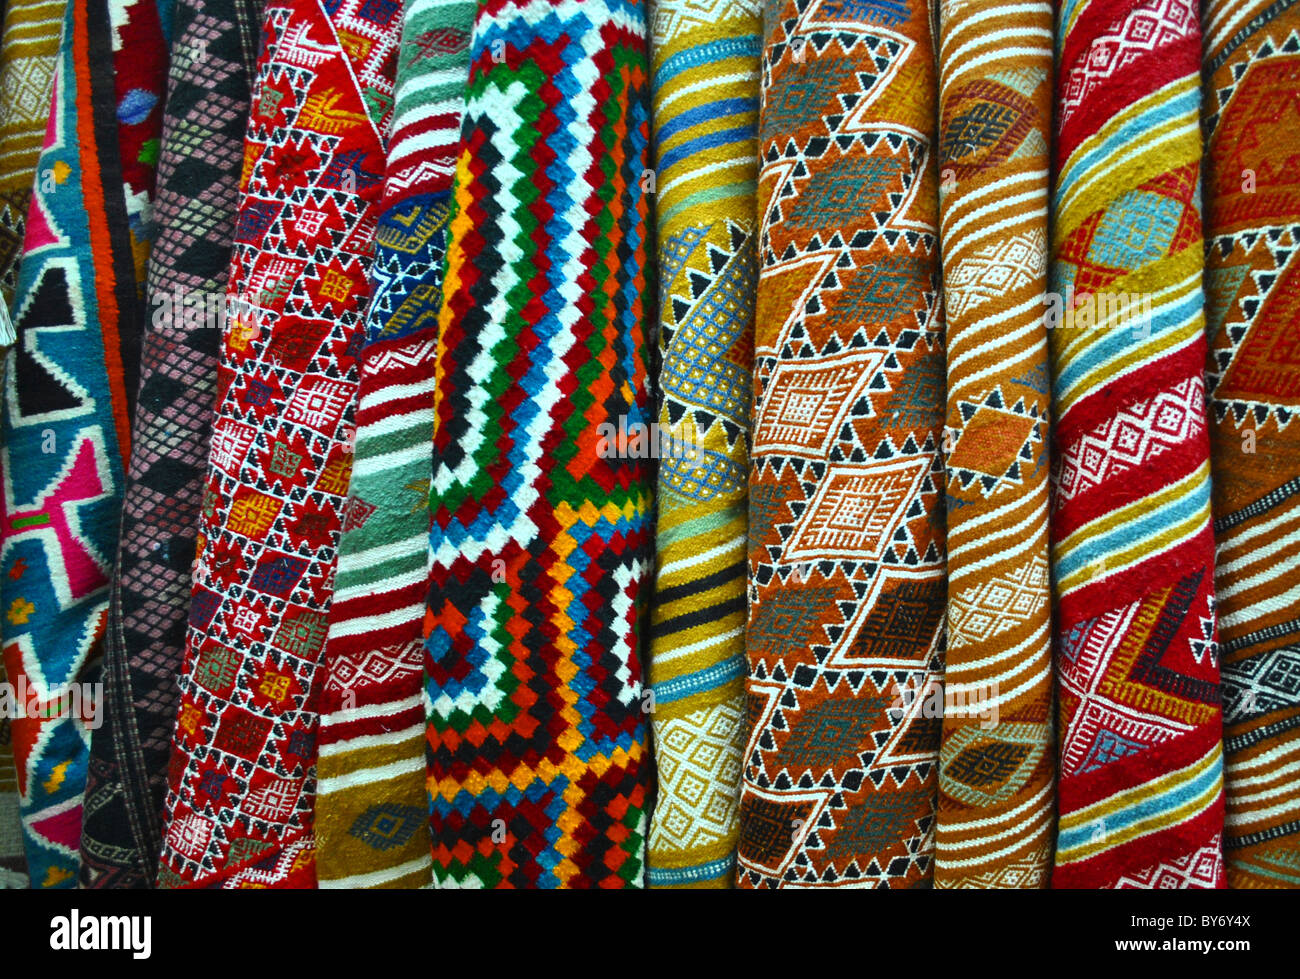 Colourful rugs for sale in a market in Sousse, Tunisia - Stock Image